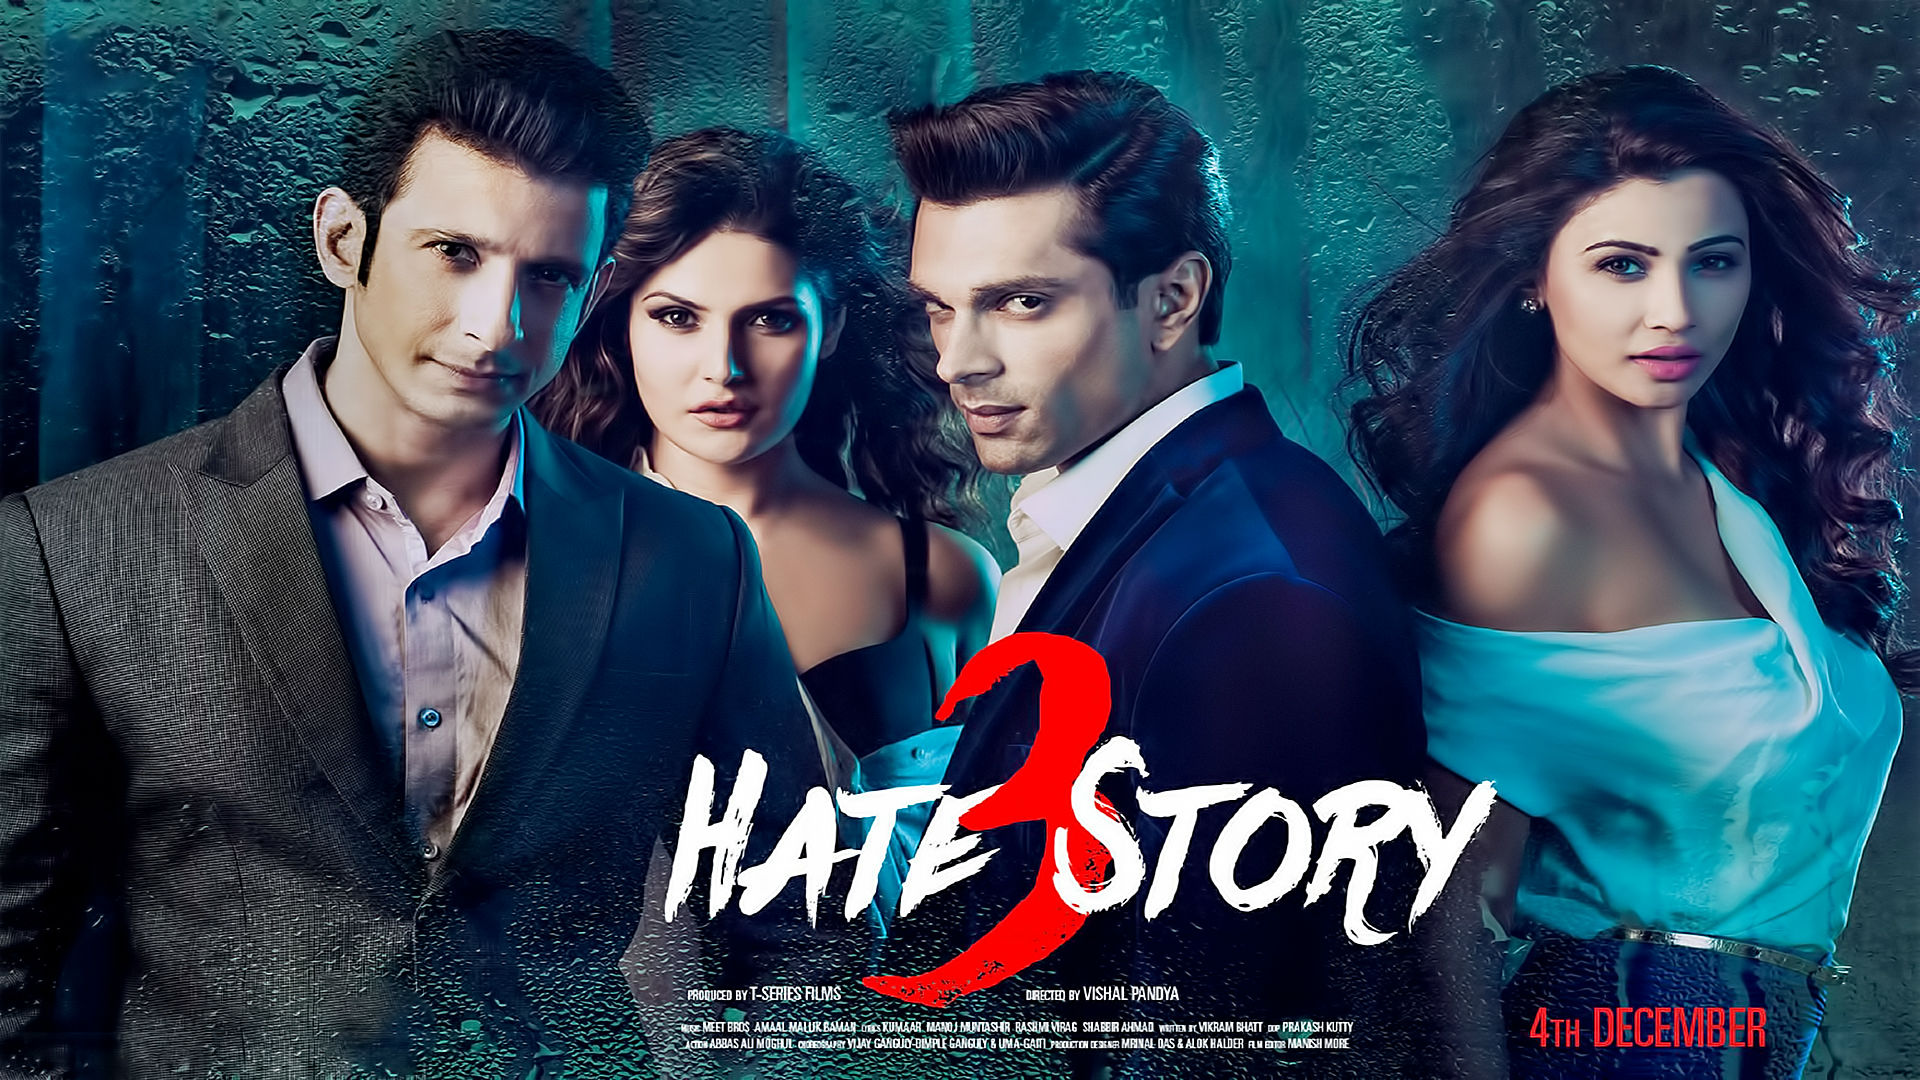 Download full movie hate story 2 in hd computercrise.